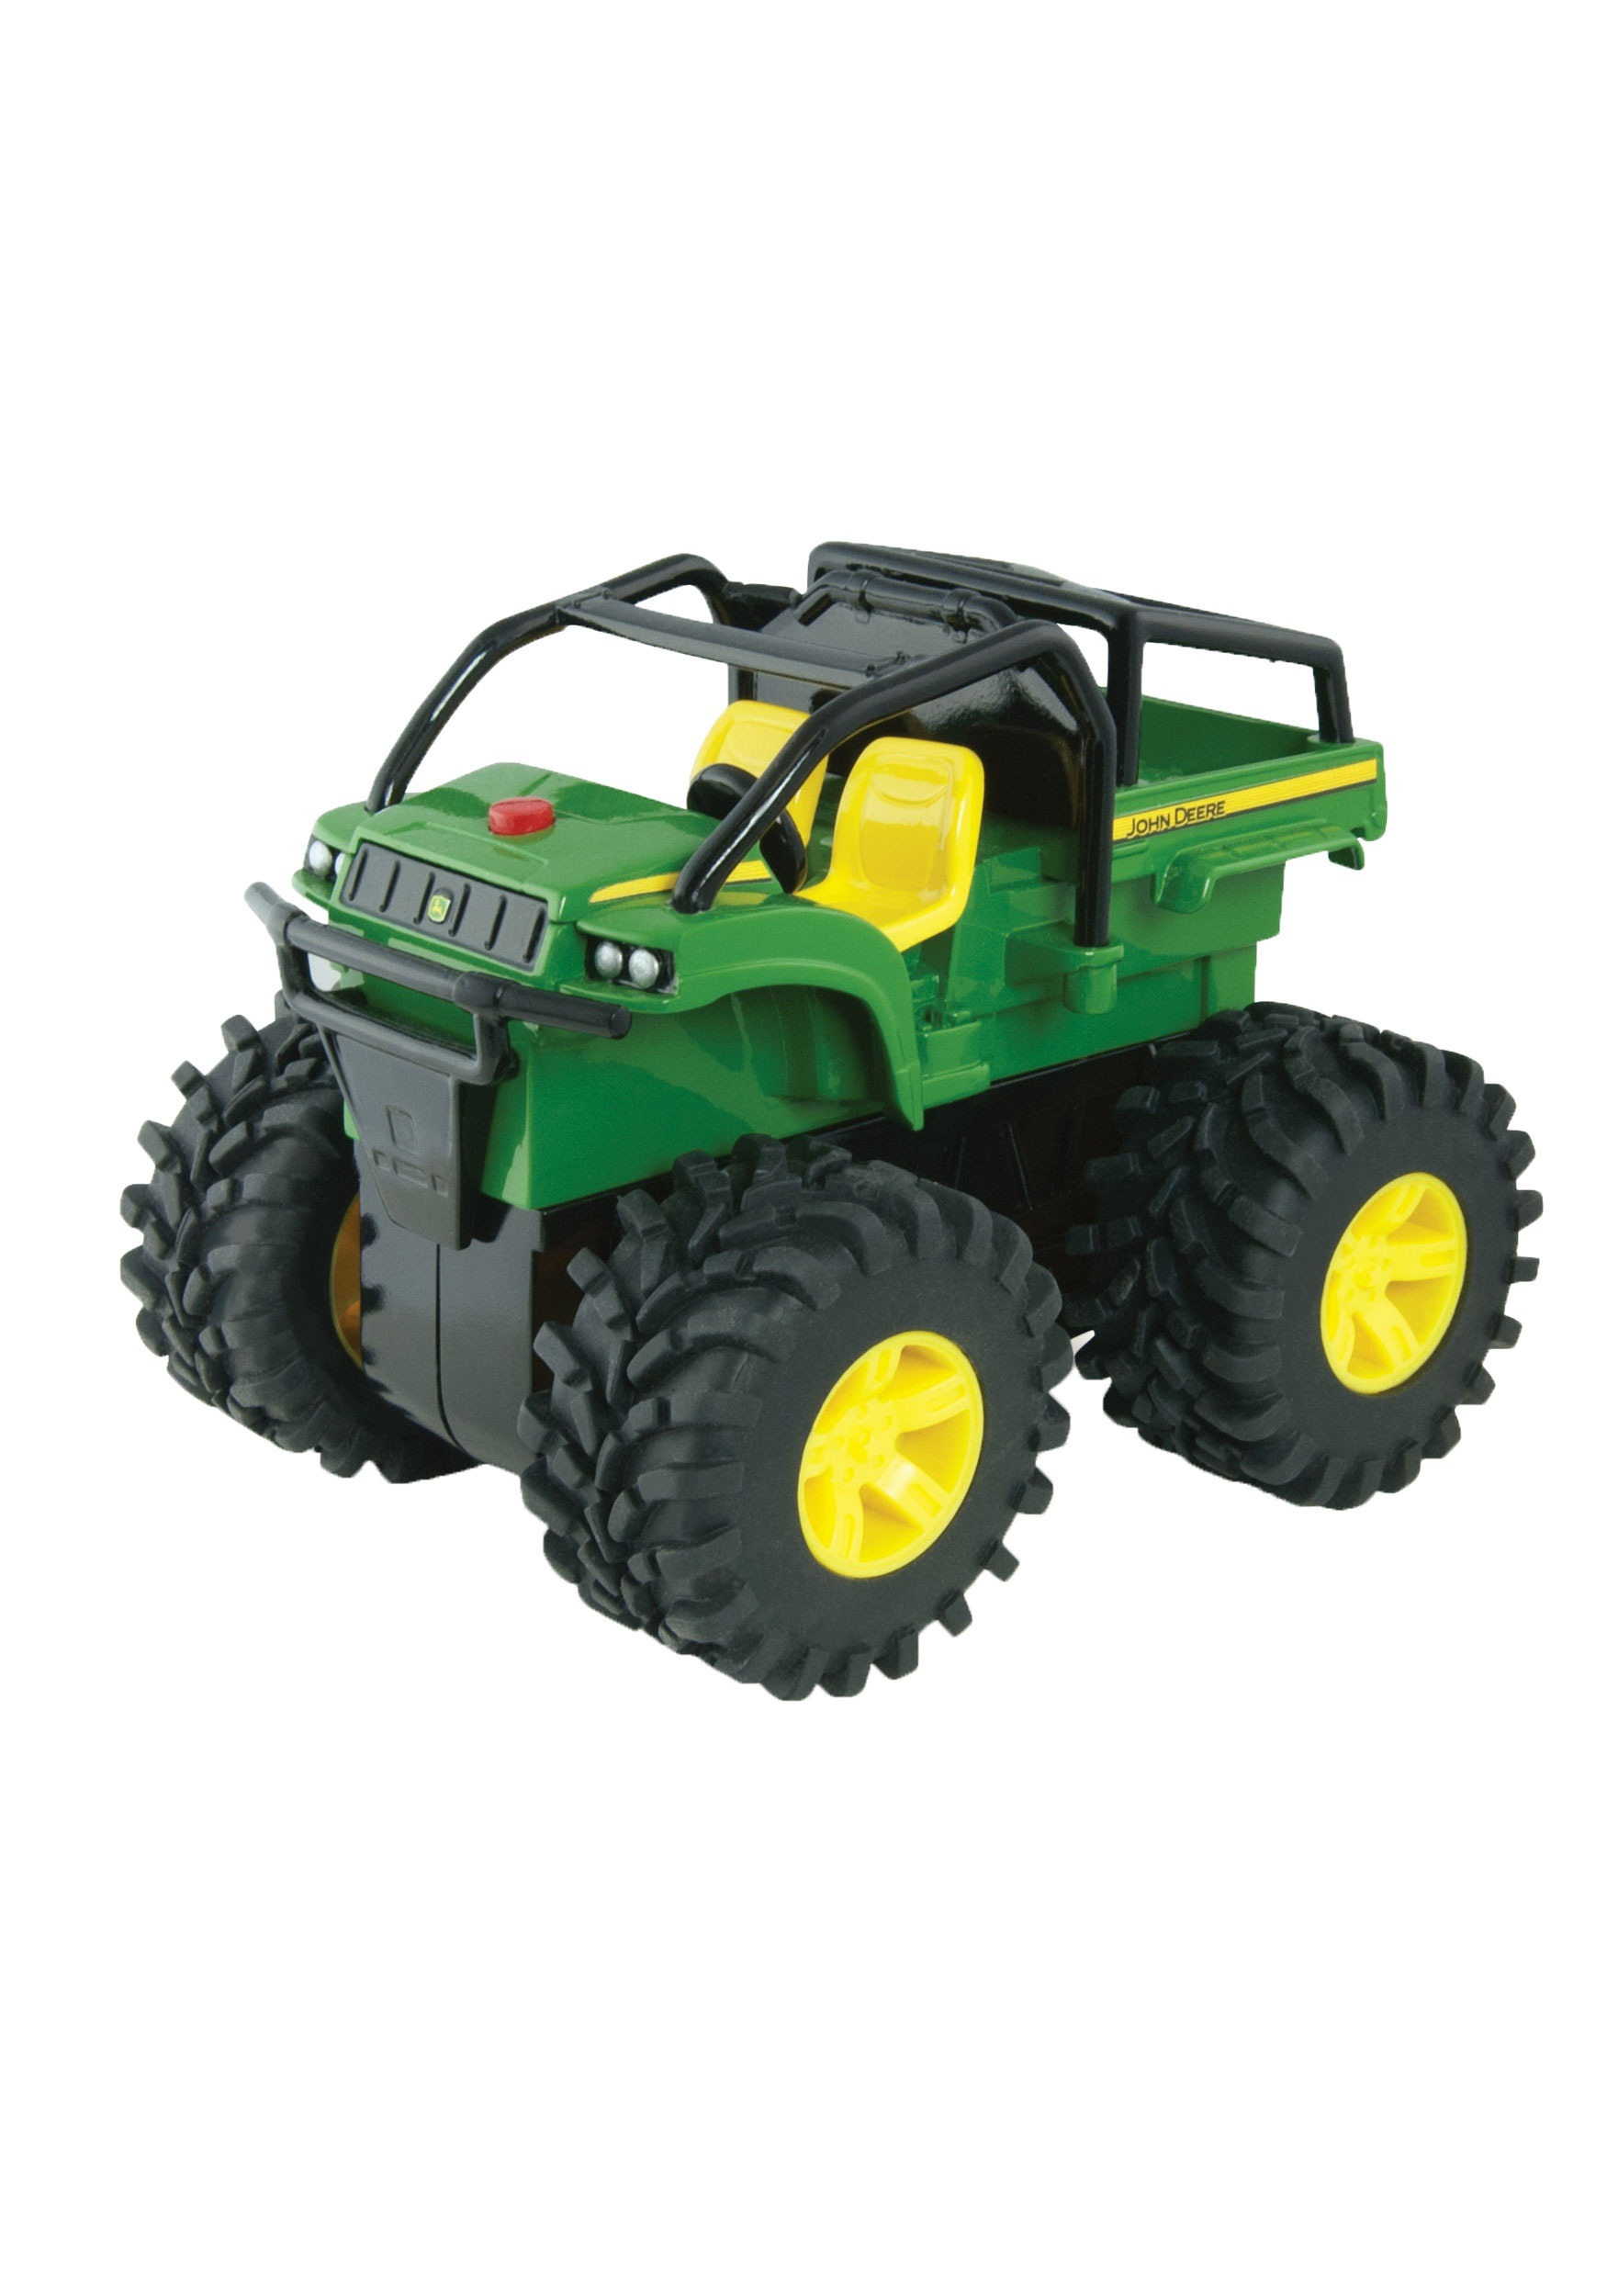 john deere gator toy. Black Bedroom Furniture Sets. Home Design Ideas